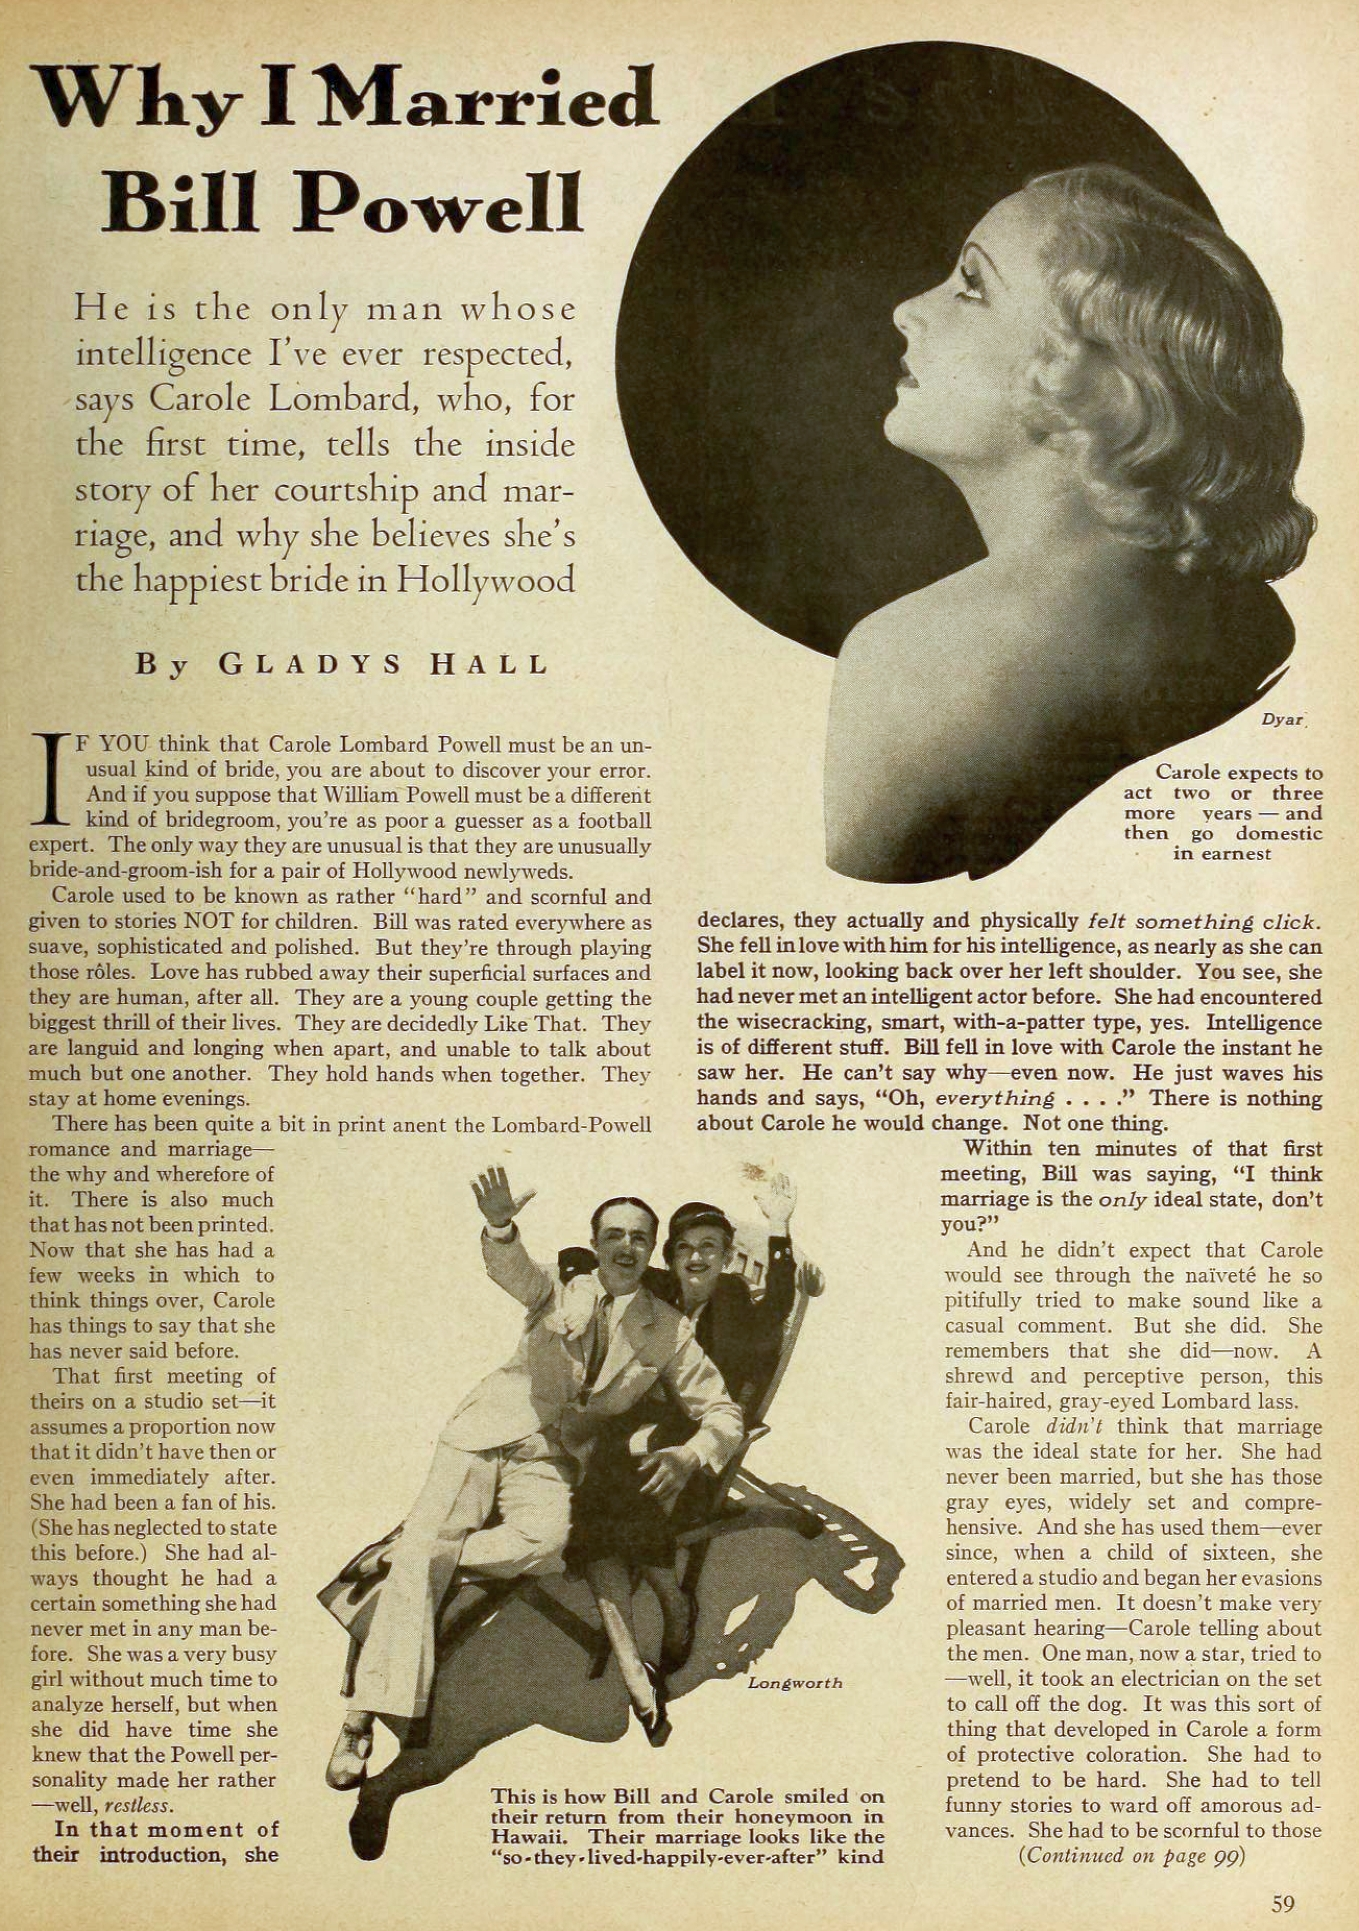 carole lombard motion picture december 1931 why i married bill powell 01a